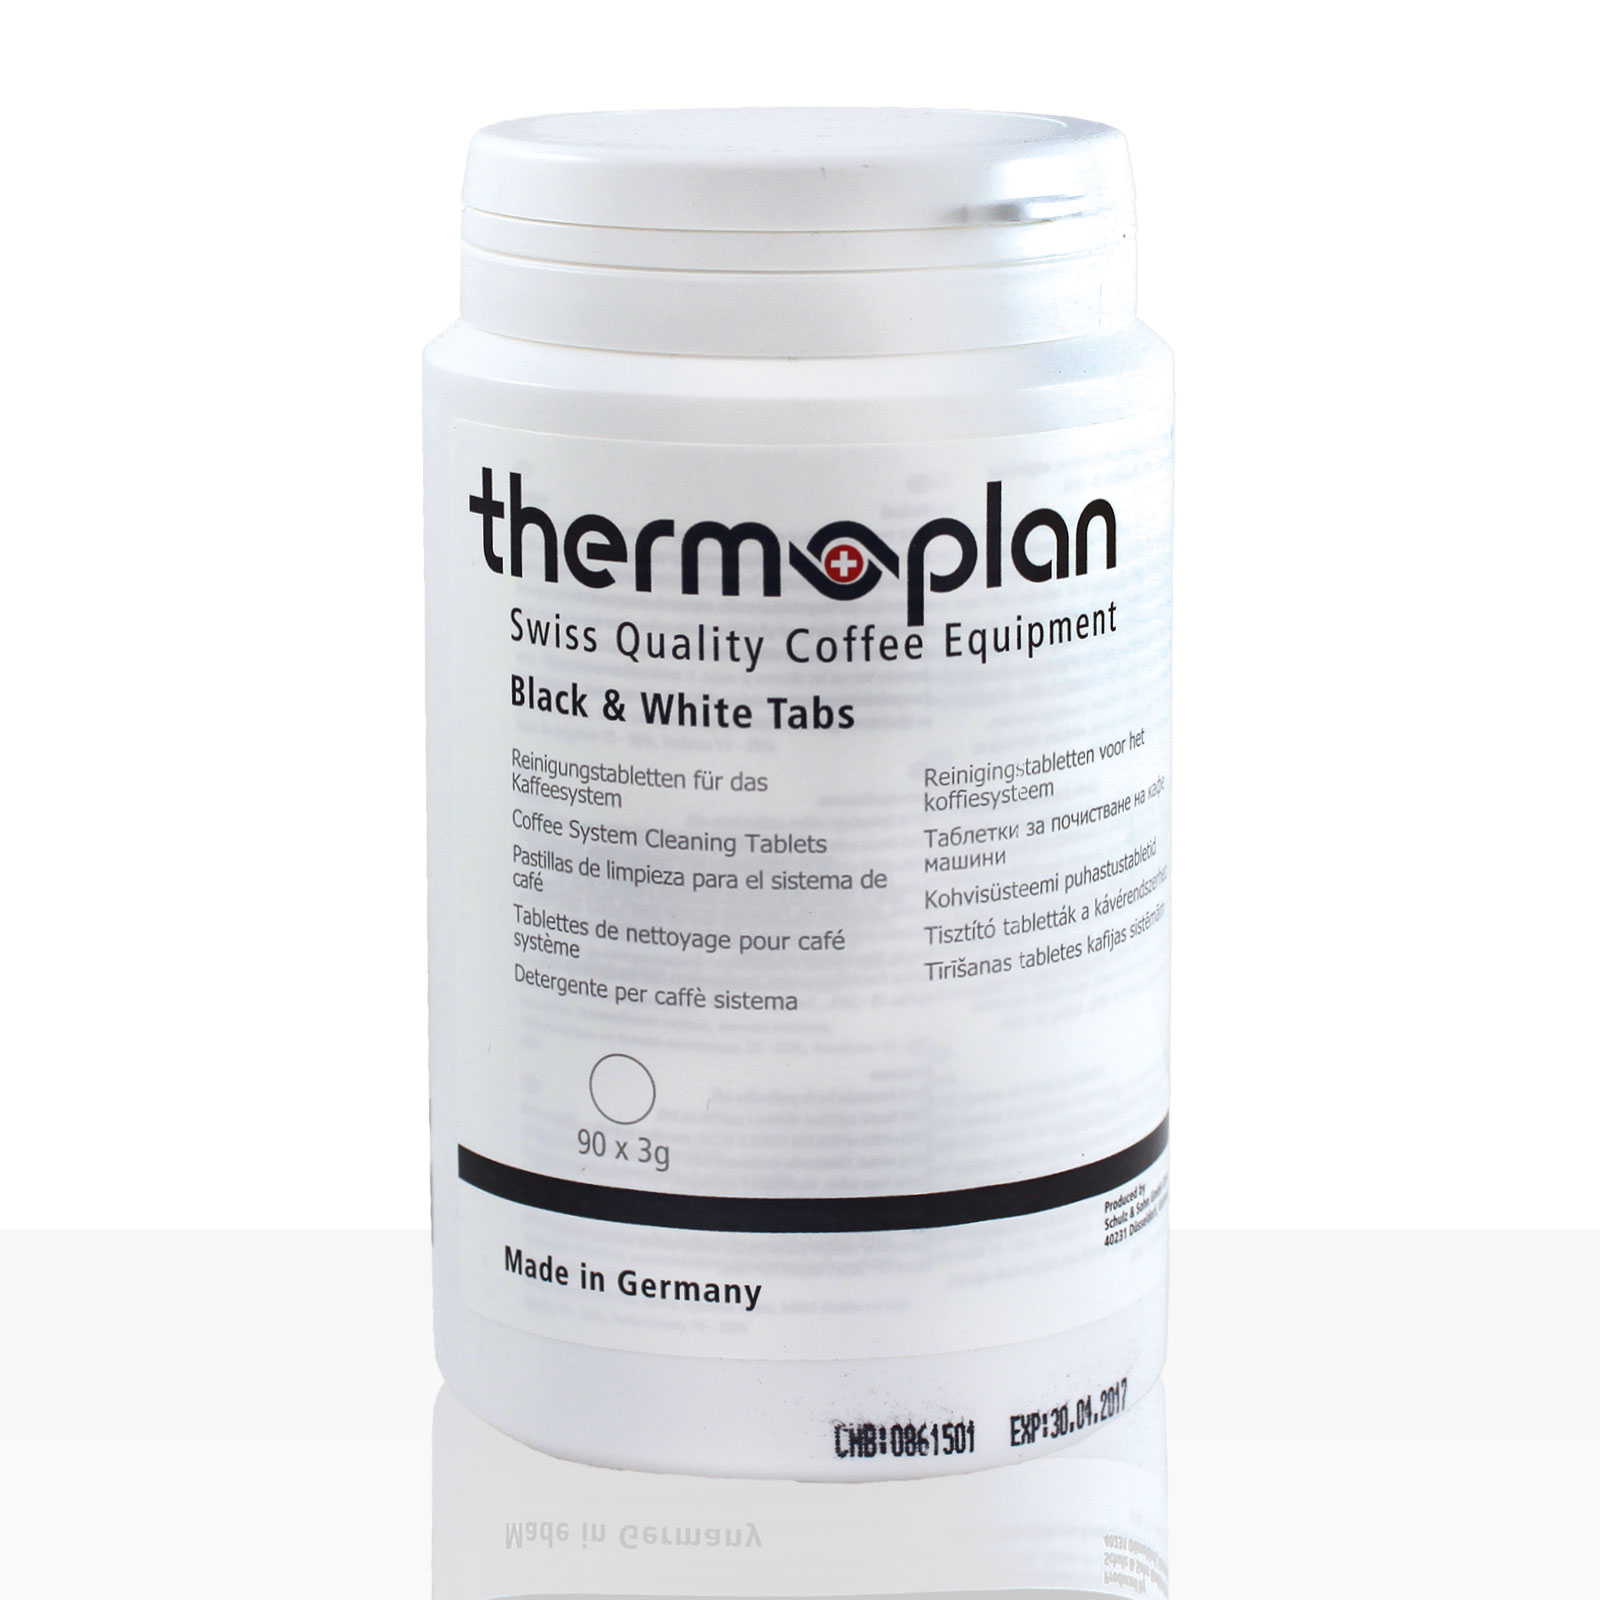 Thermoplan Black & White Tabs Reinigungs-Tabletten 90 x 3g